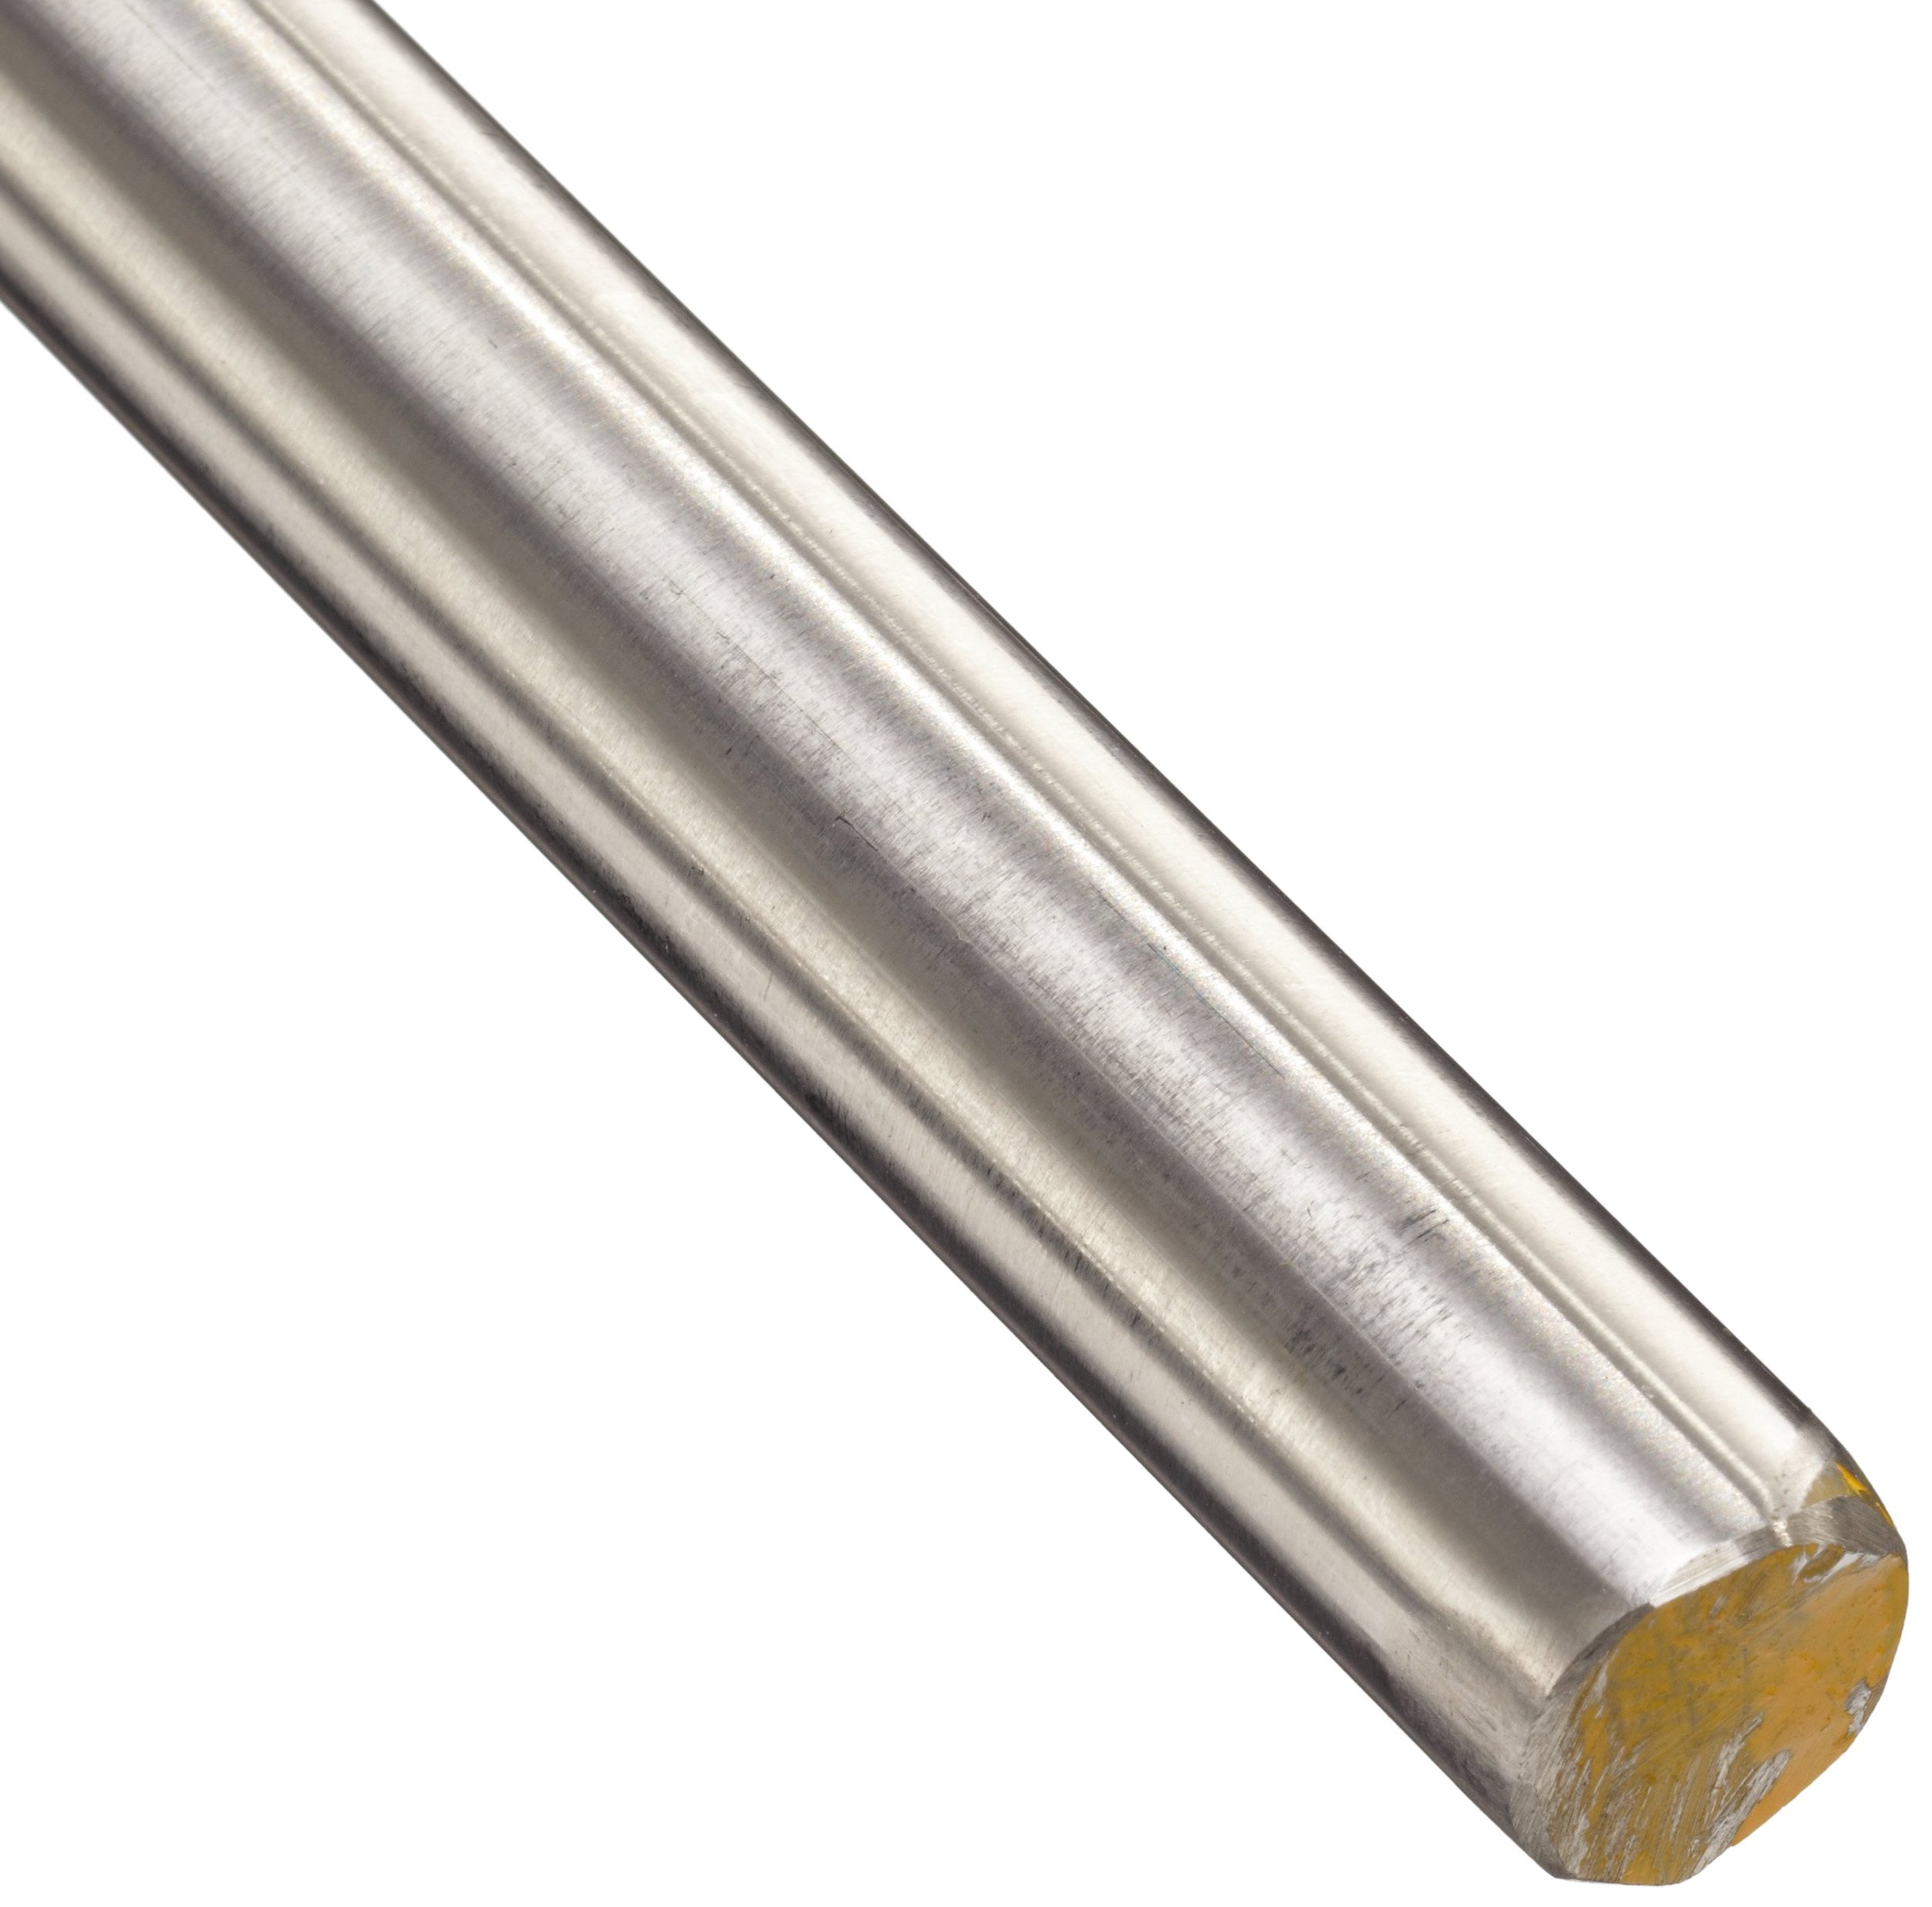 303 Stainless Steel Round Rod, Ground, Precision Tolerance, ASTM A582, 11/16'' Diameter, 12'' Length by Small Parts